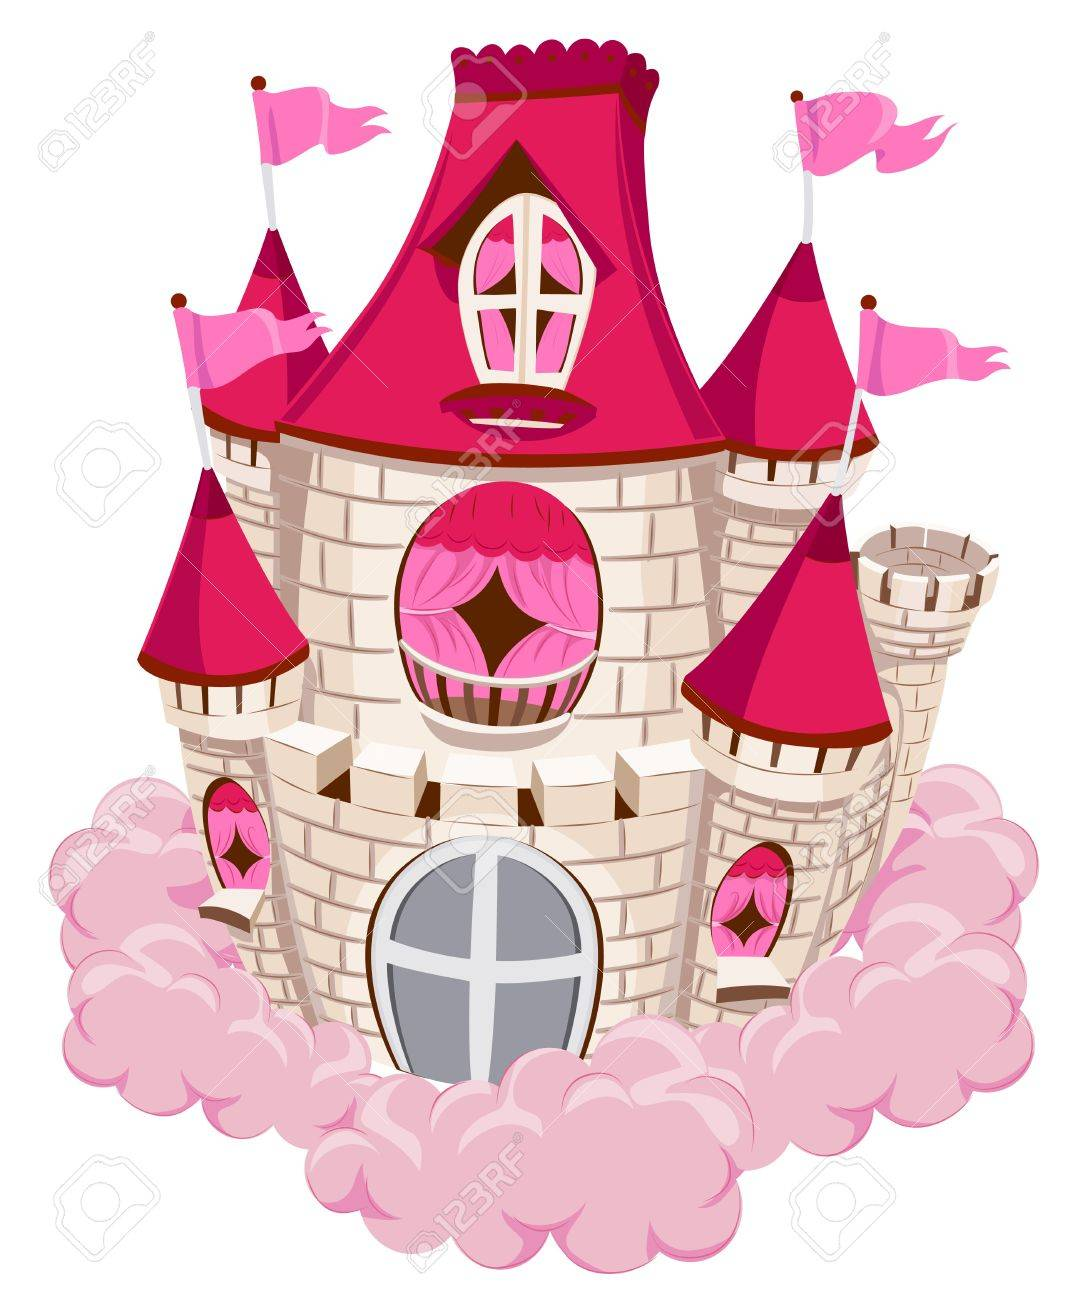 Pink Castle on a Cloud Stock Photo - 7855007